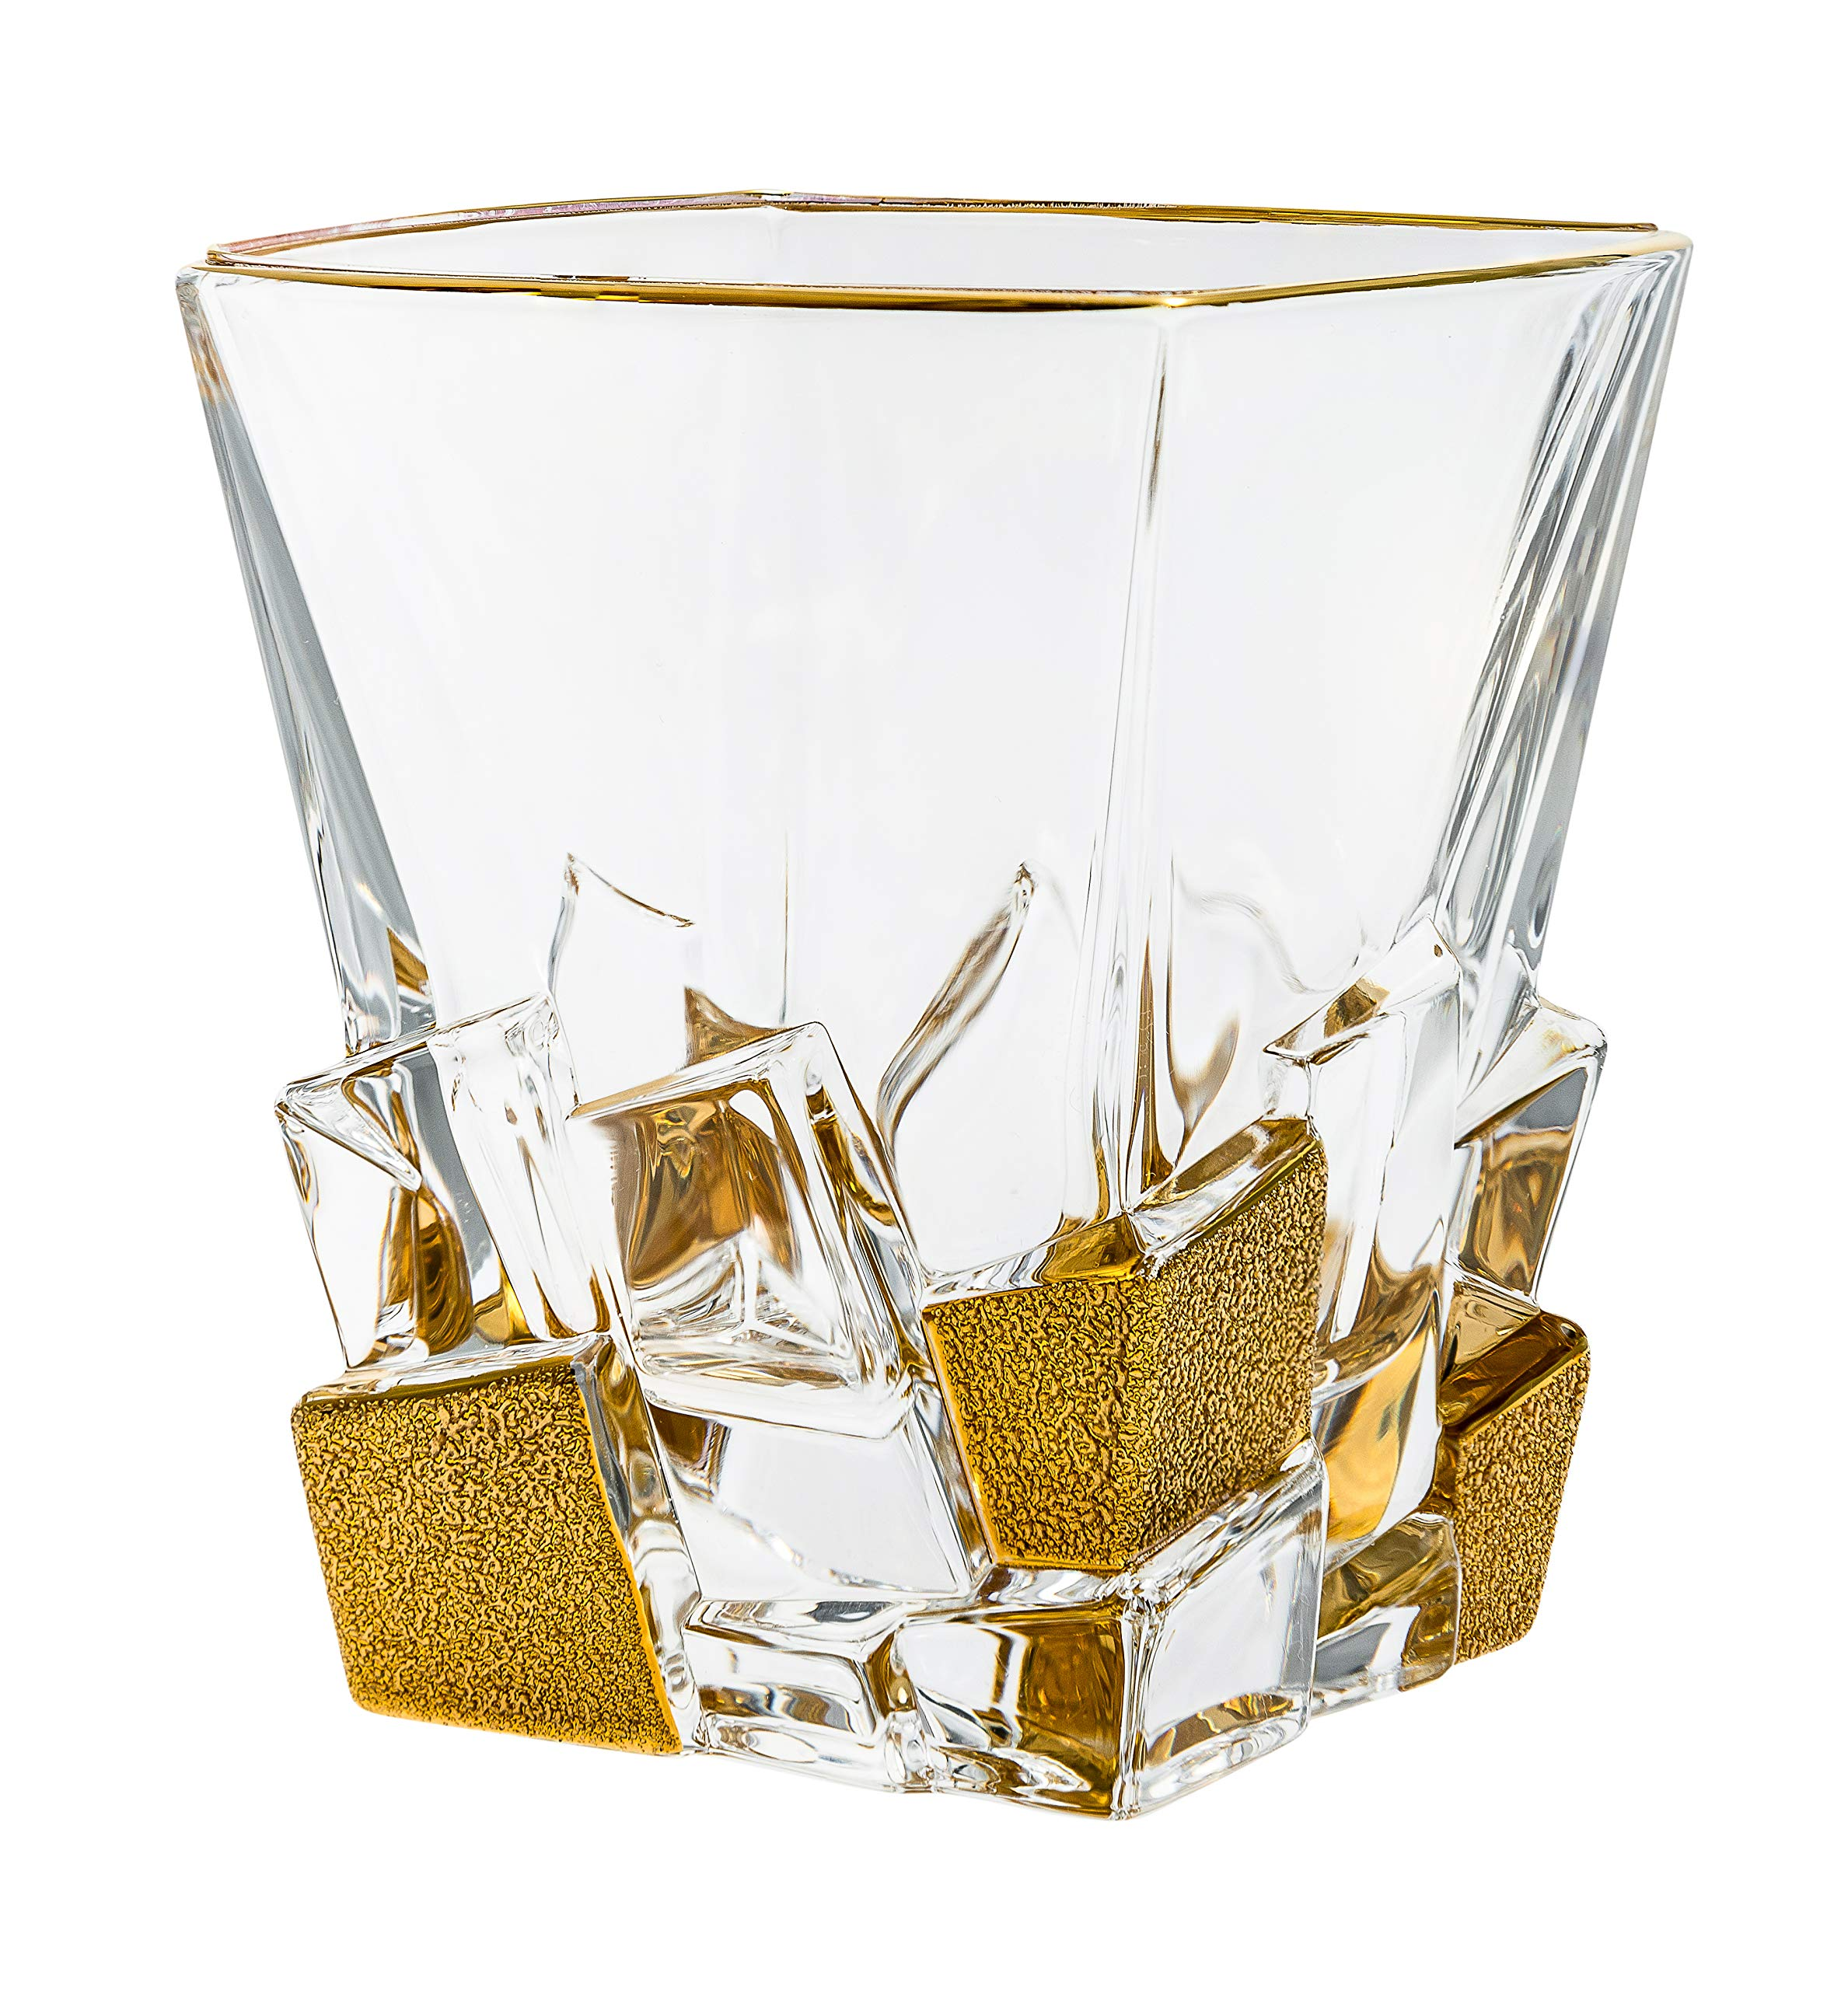 Barski - European Quality Glass - Crystal - Set of 6 - Square Shaped - Double Old Fashioned Tumblers - DOF - Tumbler is 11.7 oz. - with Matte Gold Ice Cubes Design - Glasses are Made in Europe